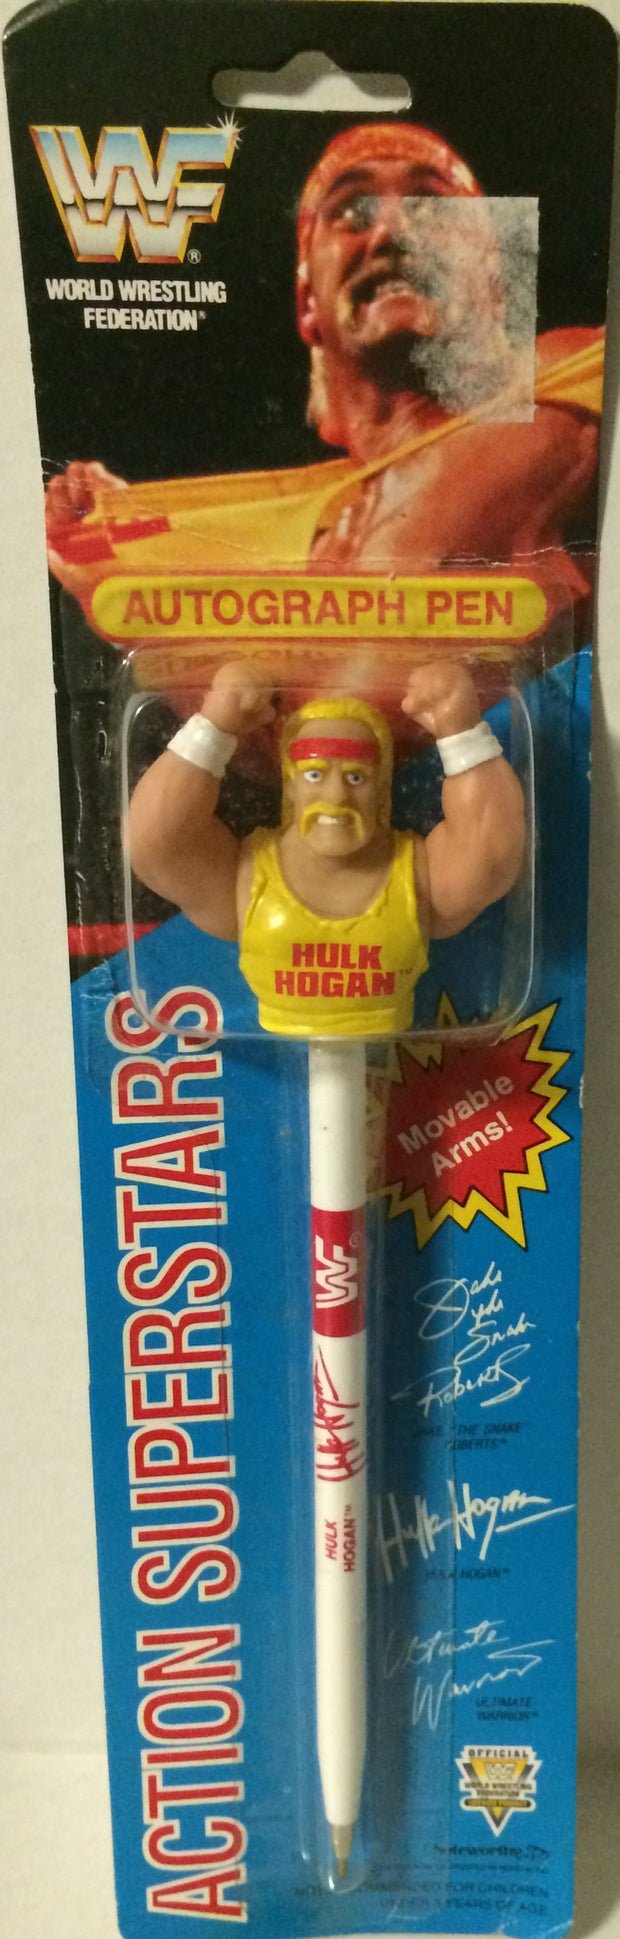 (TAS005402) - 1991 Titan Sports WWF Action Superstars Autograph Pen - Hulk Hogan, , Pen, Wrestling, The Angry Spider Vintage Toys & Collectibles Store